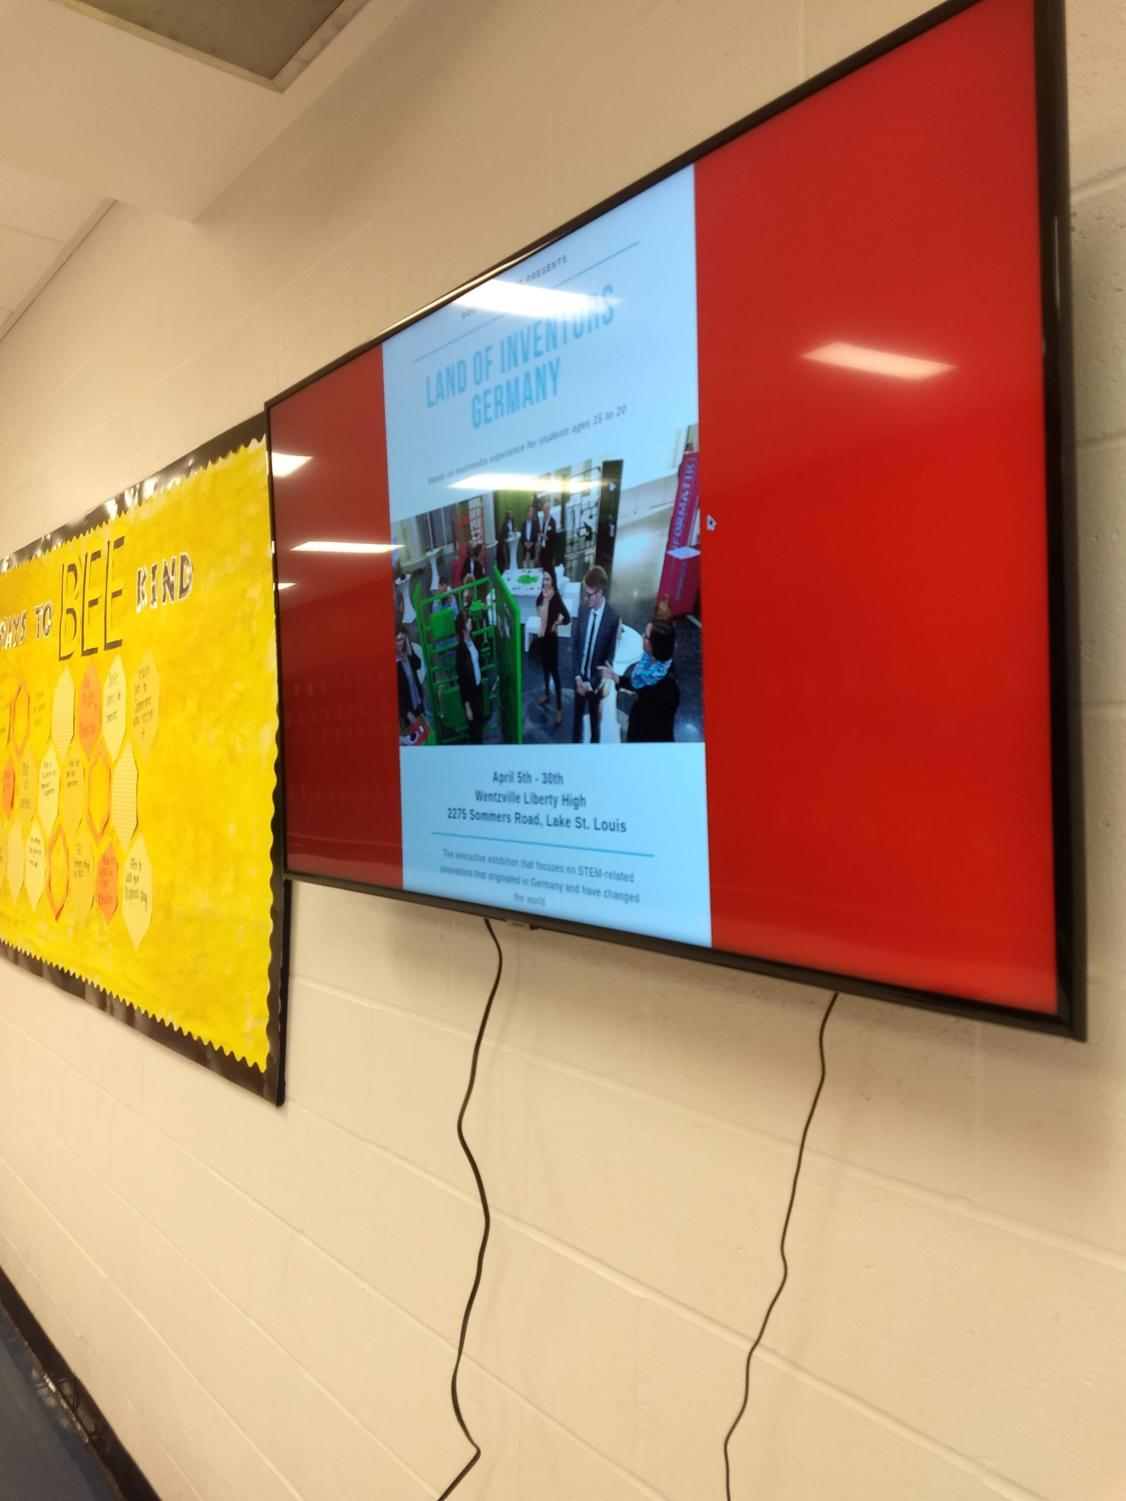 New monitors display daily announcements, photographs and video content.